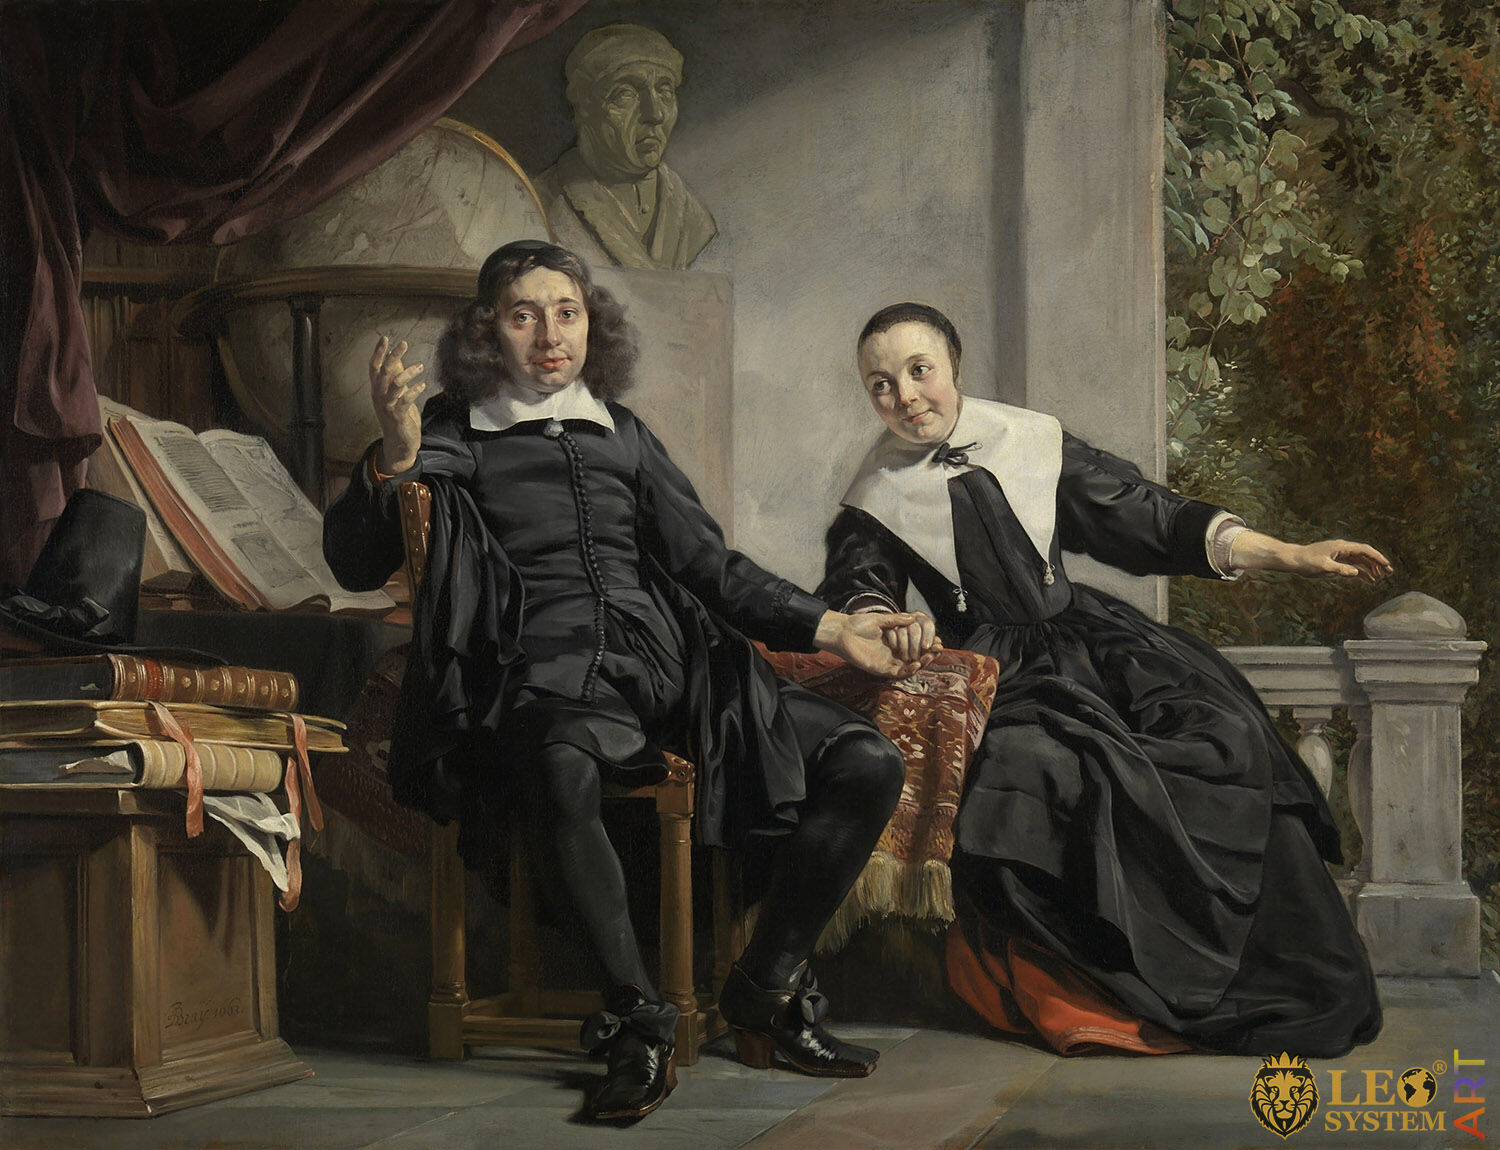 Portrait of Abraham Casteleyn and his Wife, Margarieta van Bancken, Artist: Jan de Bray, 1663, Amsterdam, Netherlands, Original painting